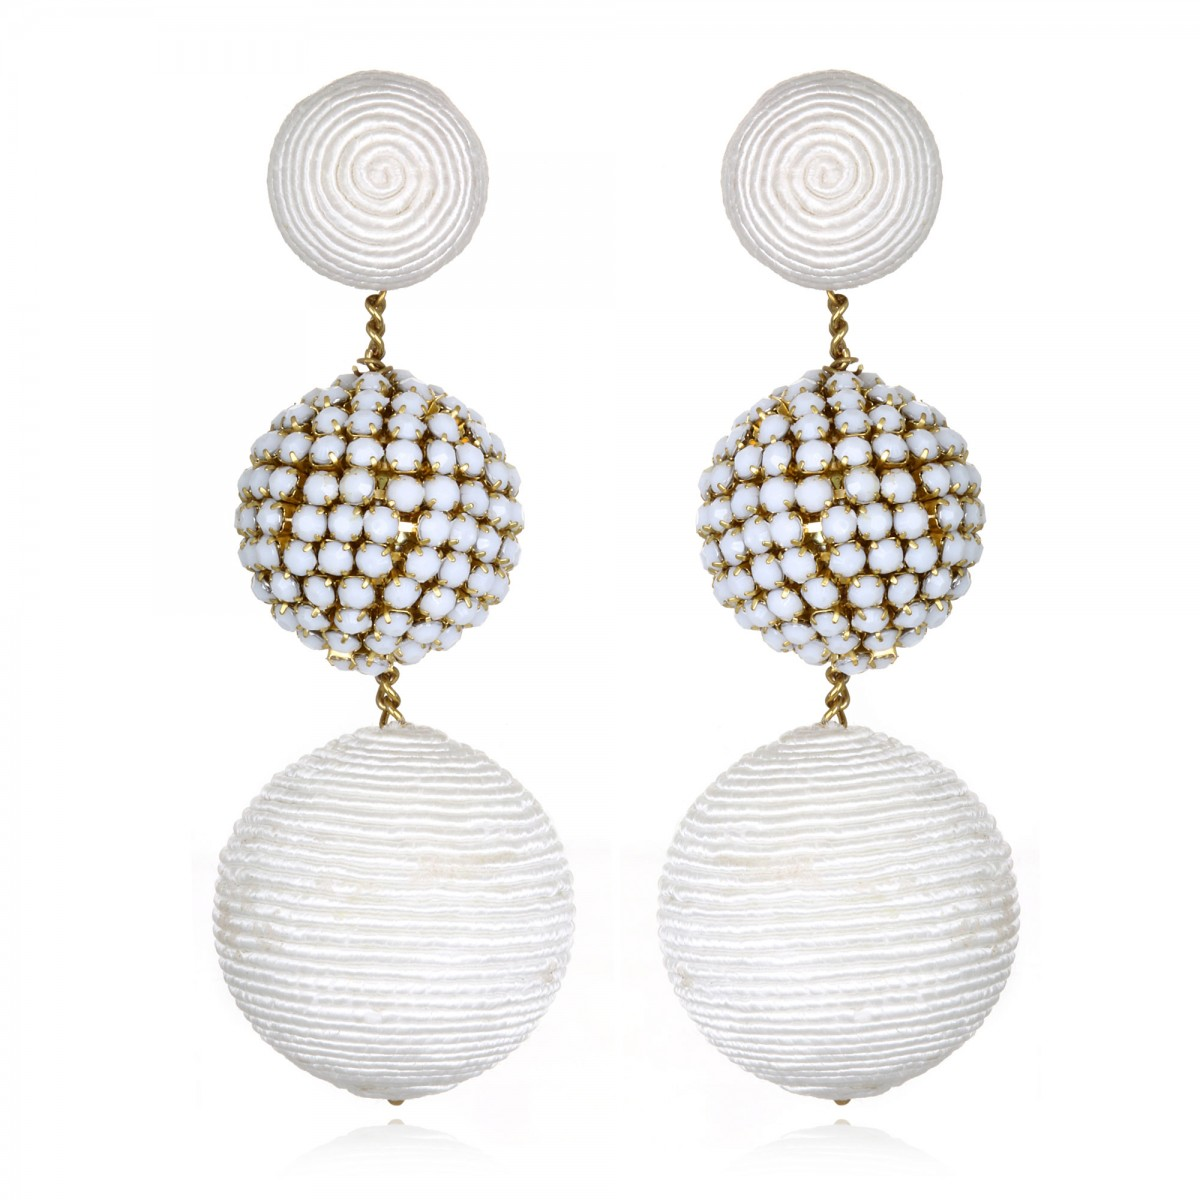 White Beaded Gumball Earrings by SUZANNA DAI